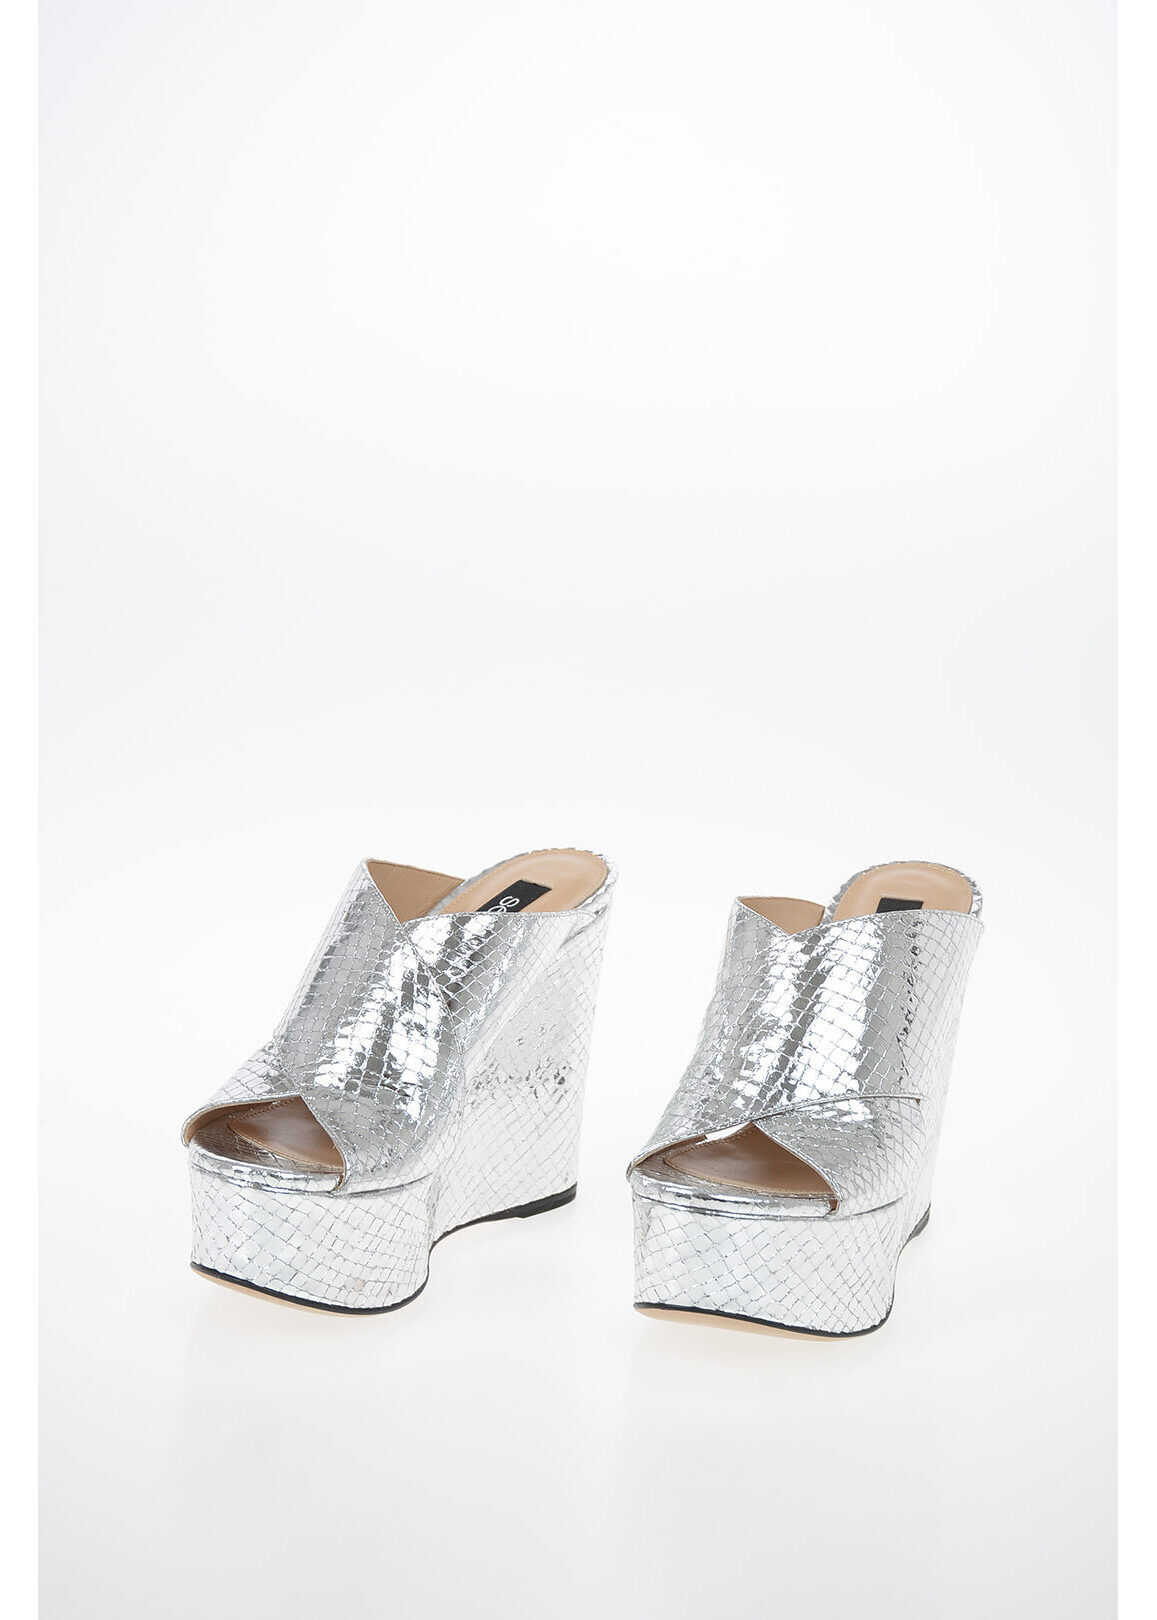 Sergio Rossi Reptile Printed Leather Sandal with Platform 12cm SILVER imagine b-mall.ro